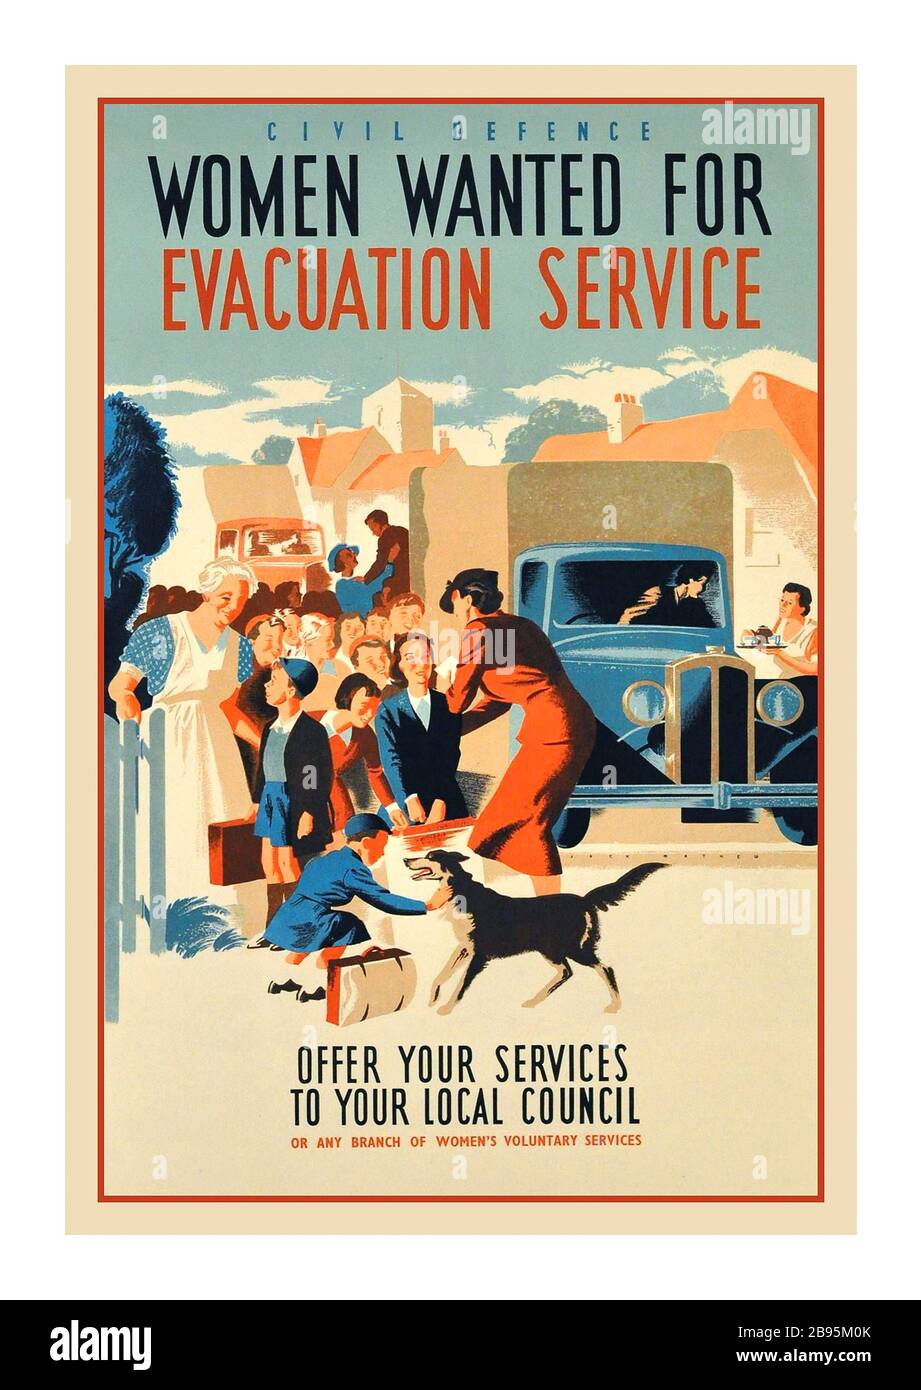 EVACUATION SERVICE Vintage 1940's WW2 World War Two poster: Civil Defence, 'Women wanted for Evacuation Service', offer your services to your local council or any branch of Women's Voluntary Services. Image of lady volunteers helping a group of evacuee children dressed in smart clothes and school uniforms carrying small suitcases as they arrive in a village, greeting them from the lorries with one lady offering tea to a female truck driver and a small child playing with a dog. Artwork by Jack Mathew. Stock Photo